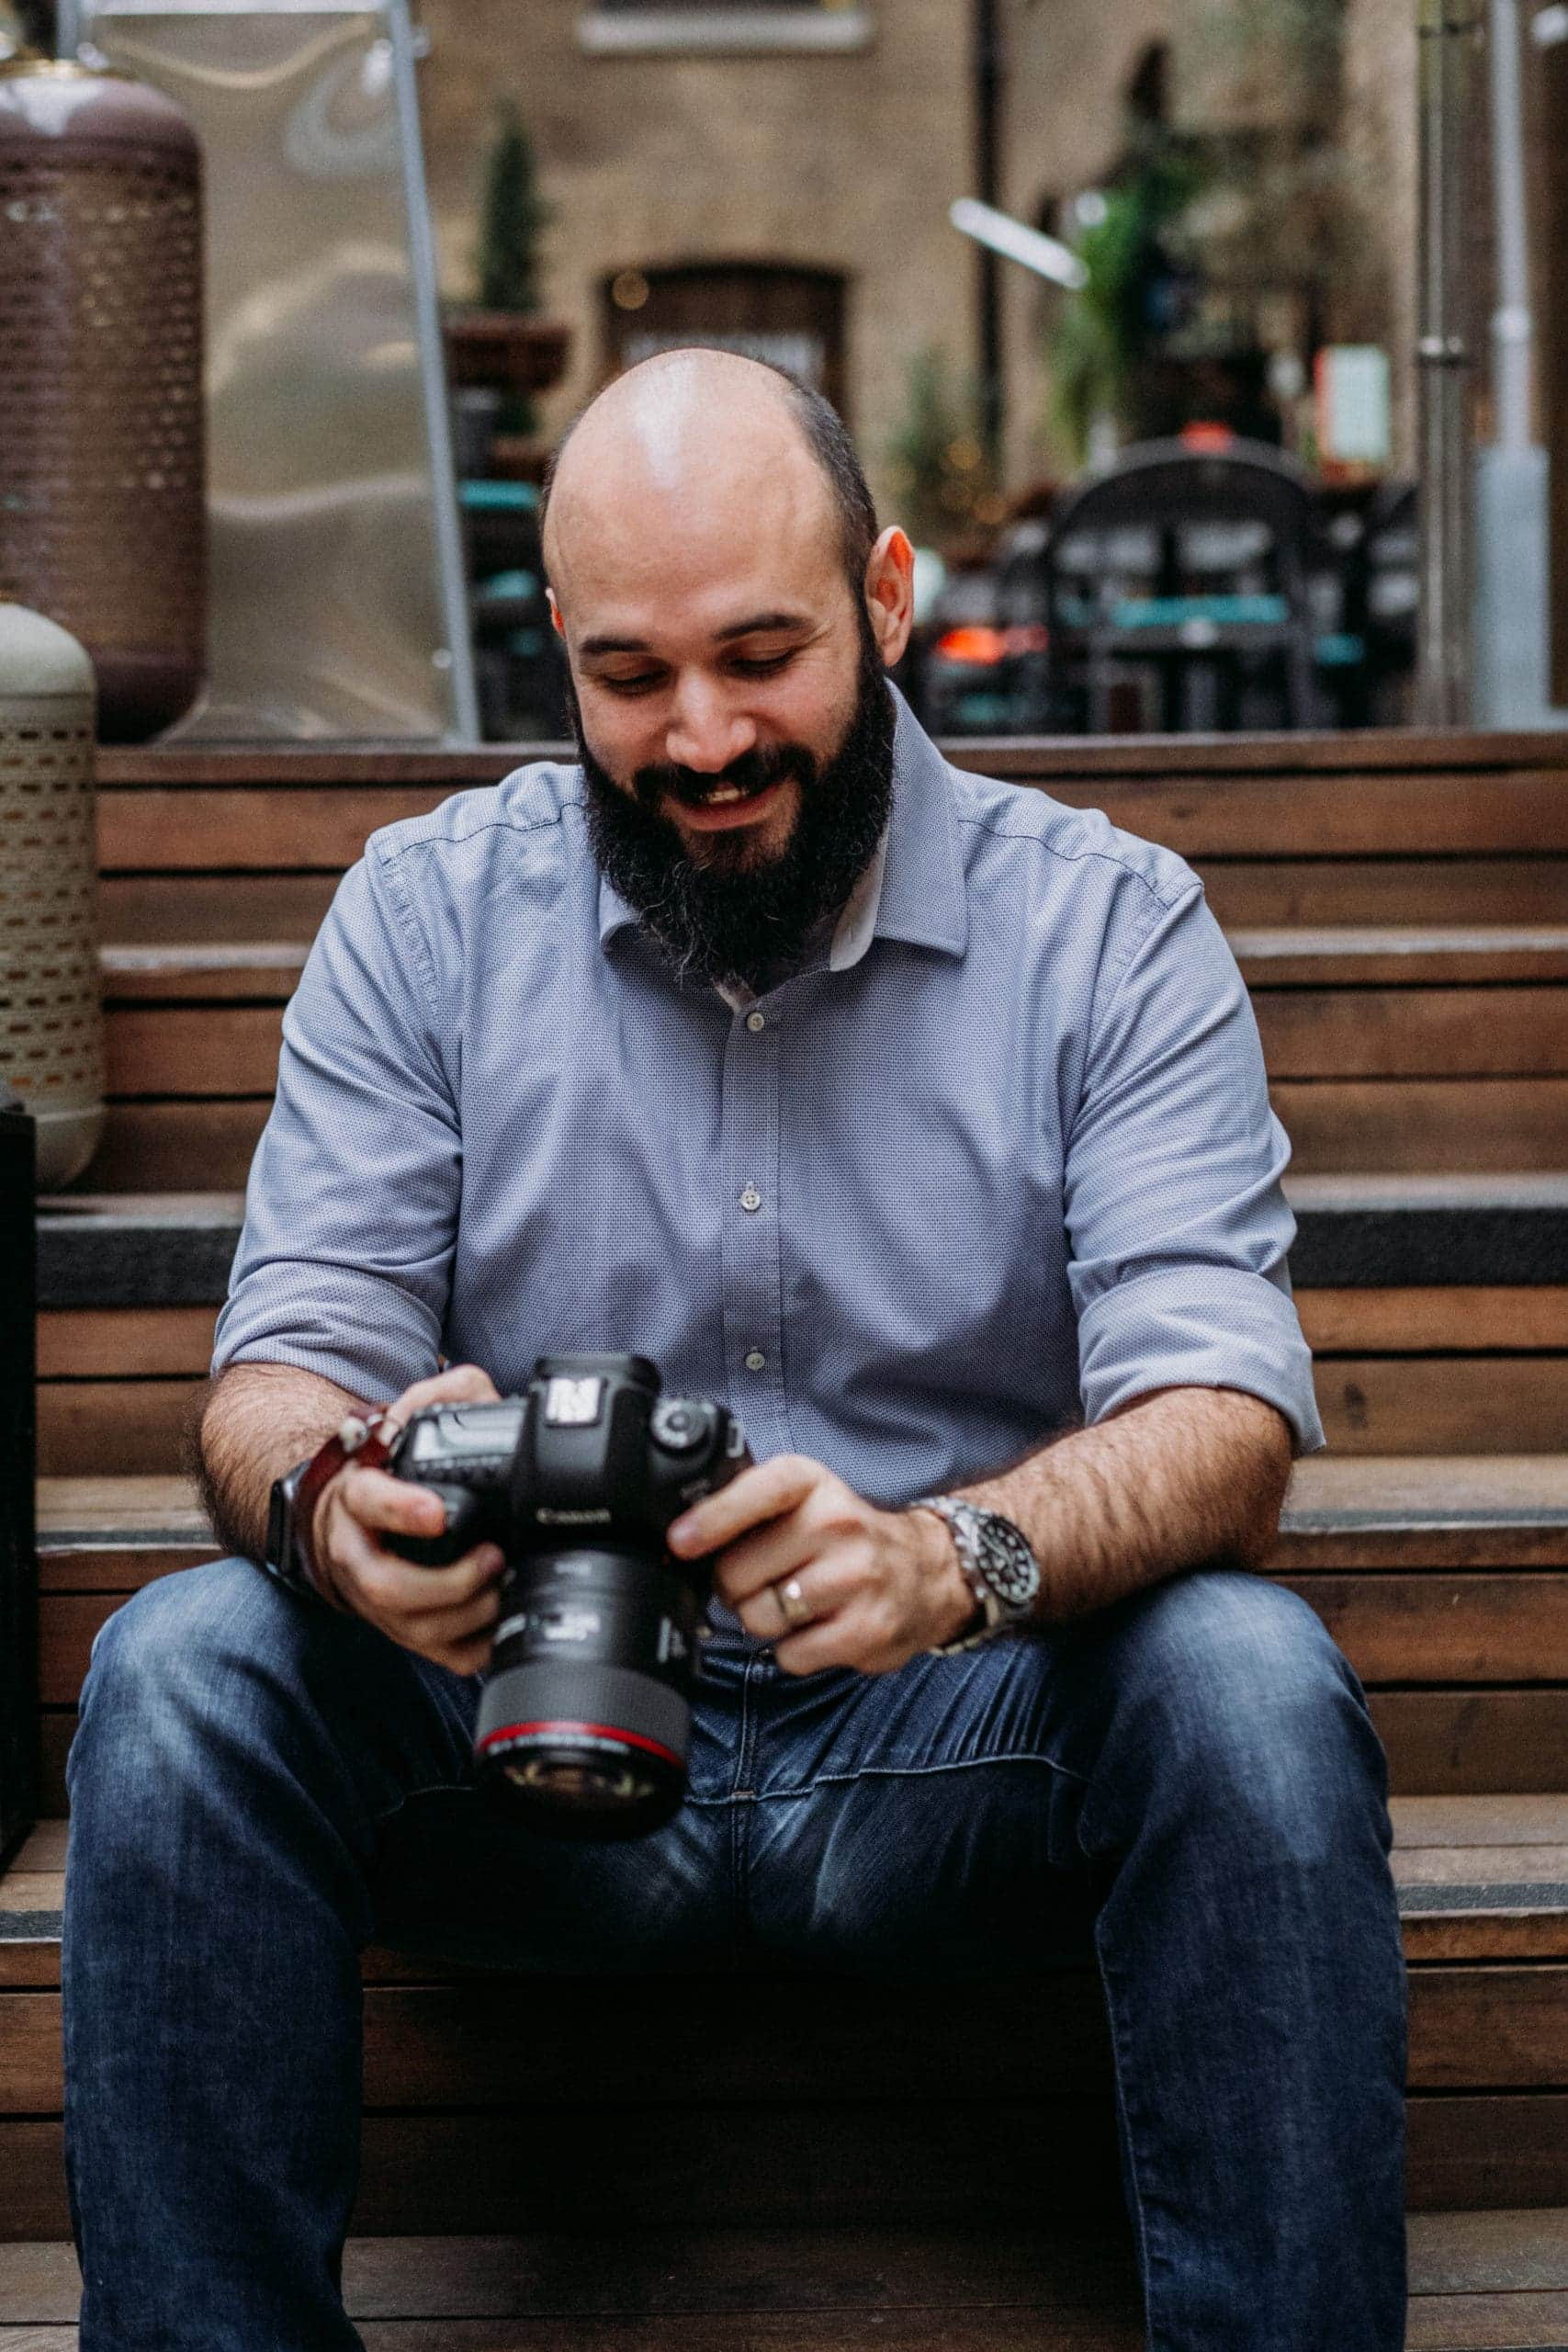 Steve Mulvey Sitting on the steps camera review